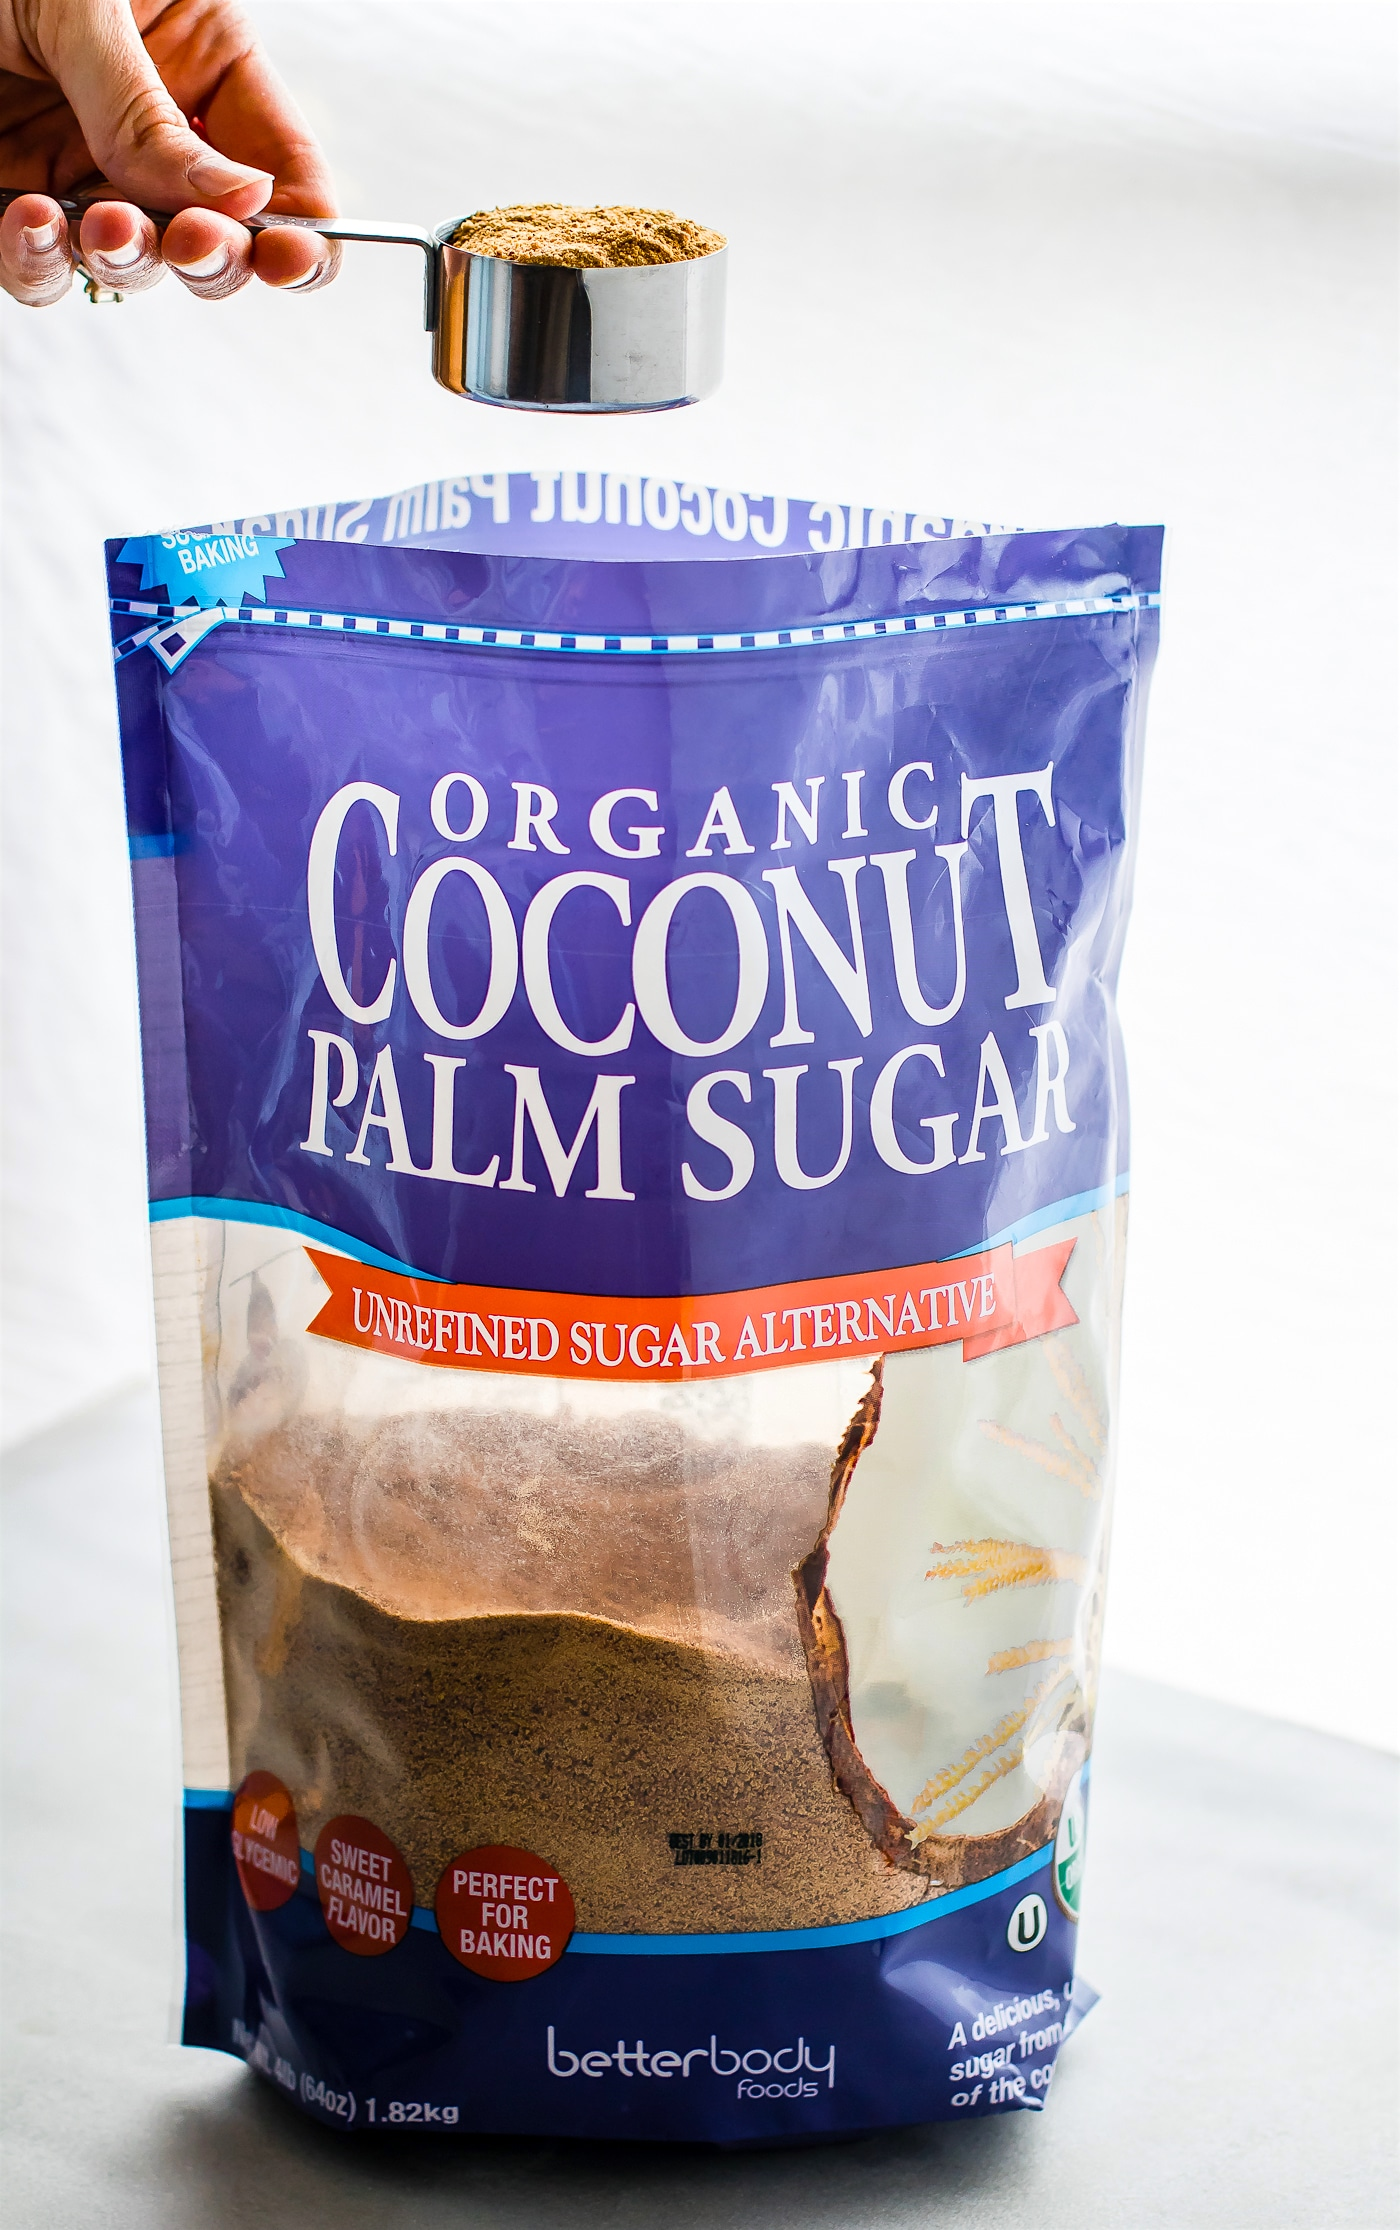 Organic Coconut Sugar from Better Body Foods